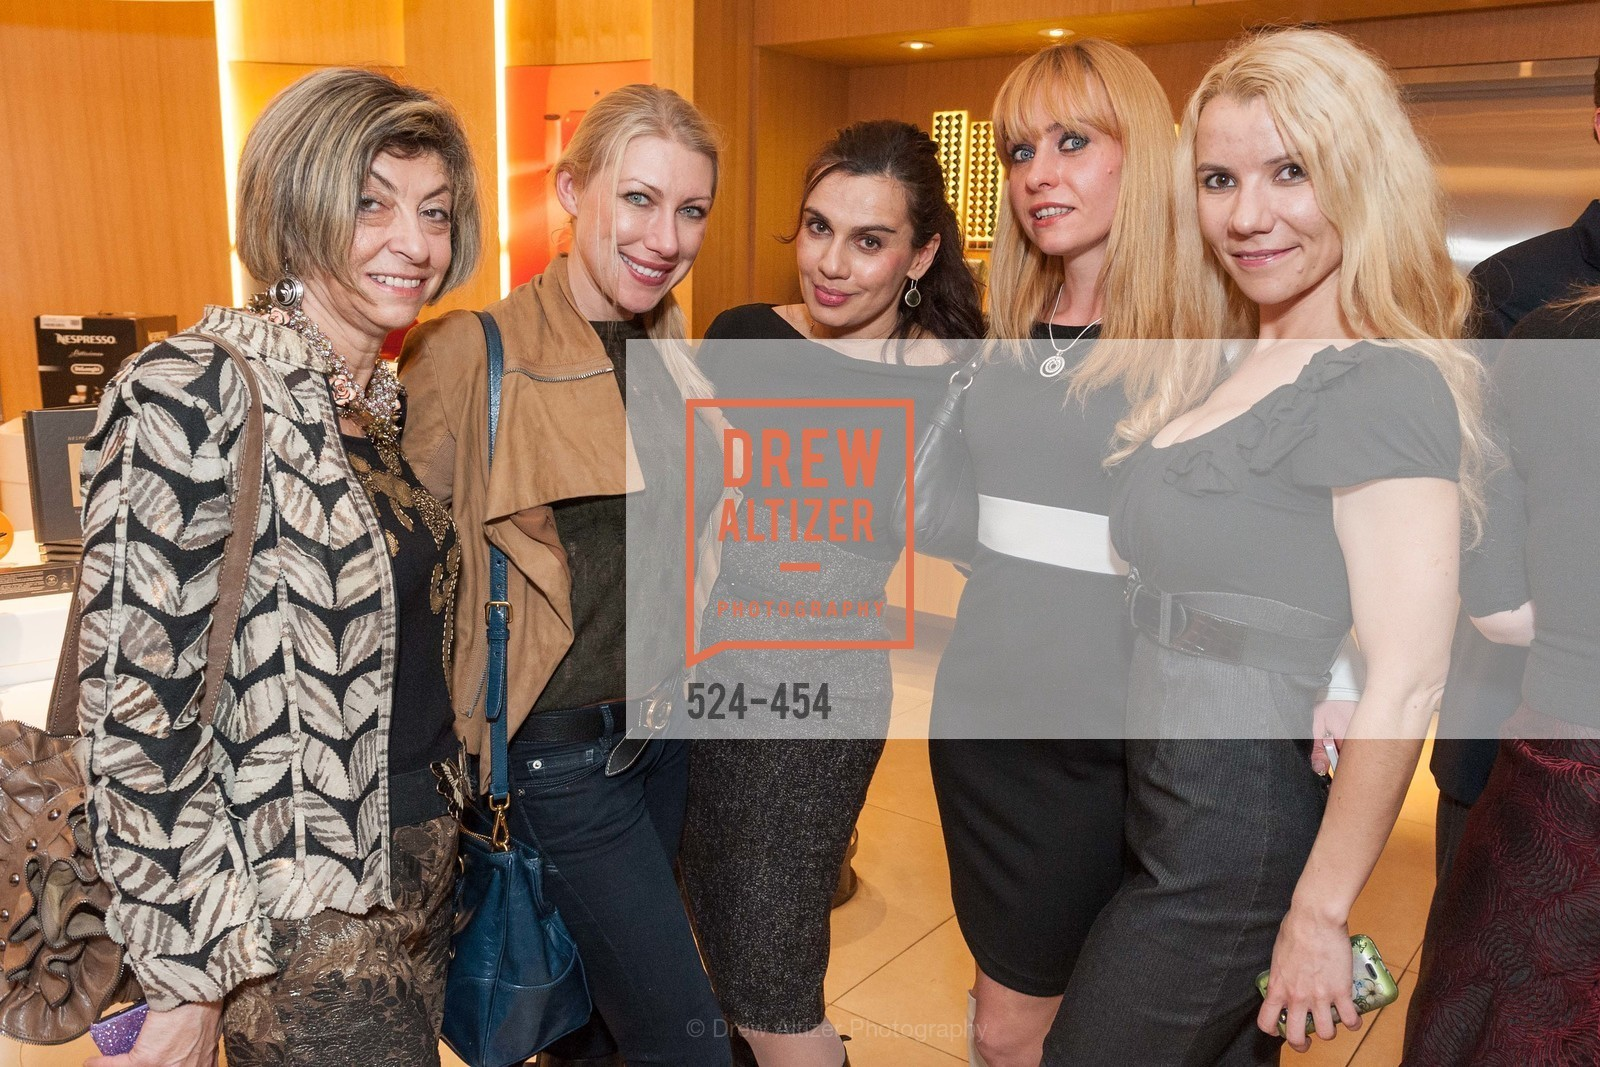 Ludmila Eggleton, Lana Dobbs, Maya Gervis, Irina Kondratenko, 2014 SAN FRANCISCO BALLET ENCORE! Kick-Off Party, US. Nespresso Boutique Bar, 90 Grant Avenue, January 7th, 2014,Drew Altizer, Drew Altizer Photography, full-service agency, private events, San Francisco photographer, photographer california